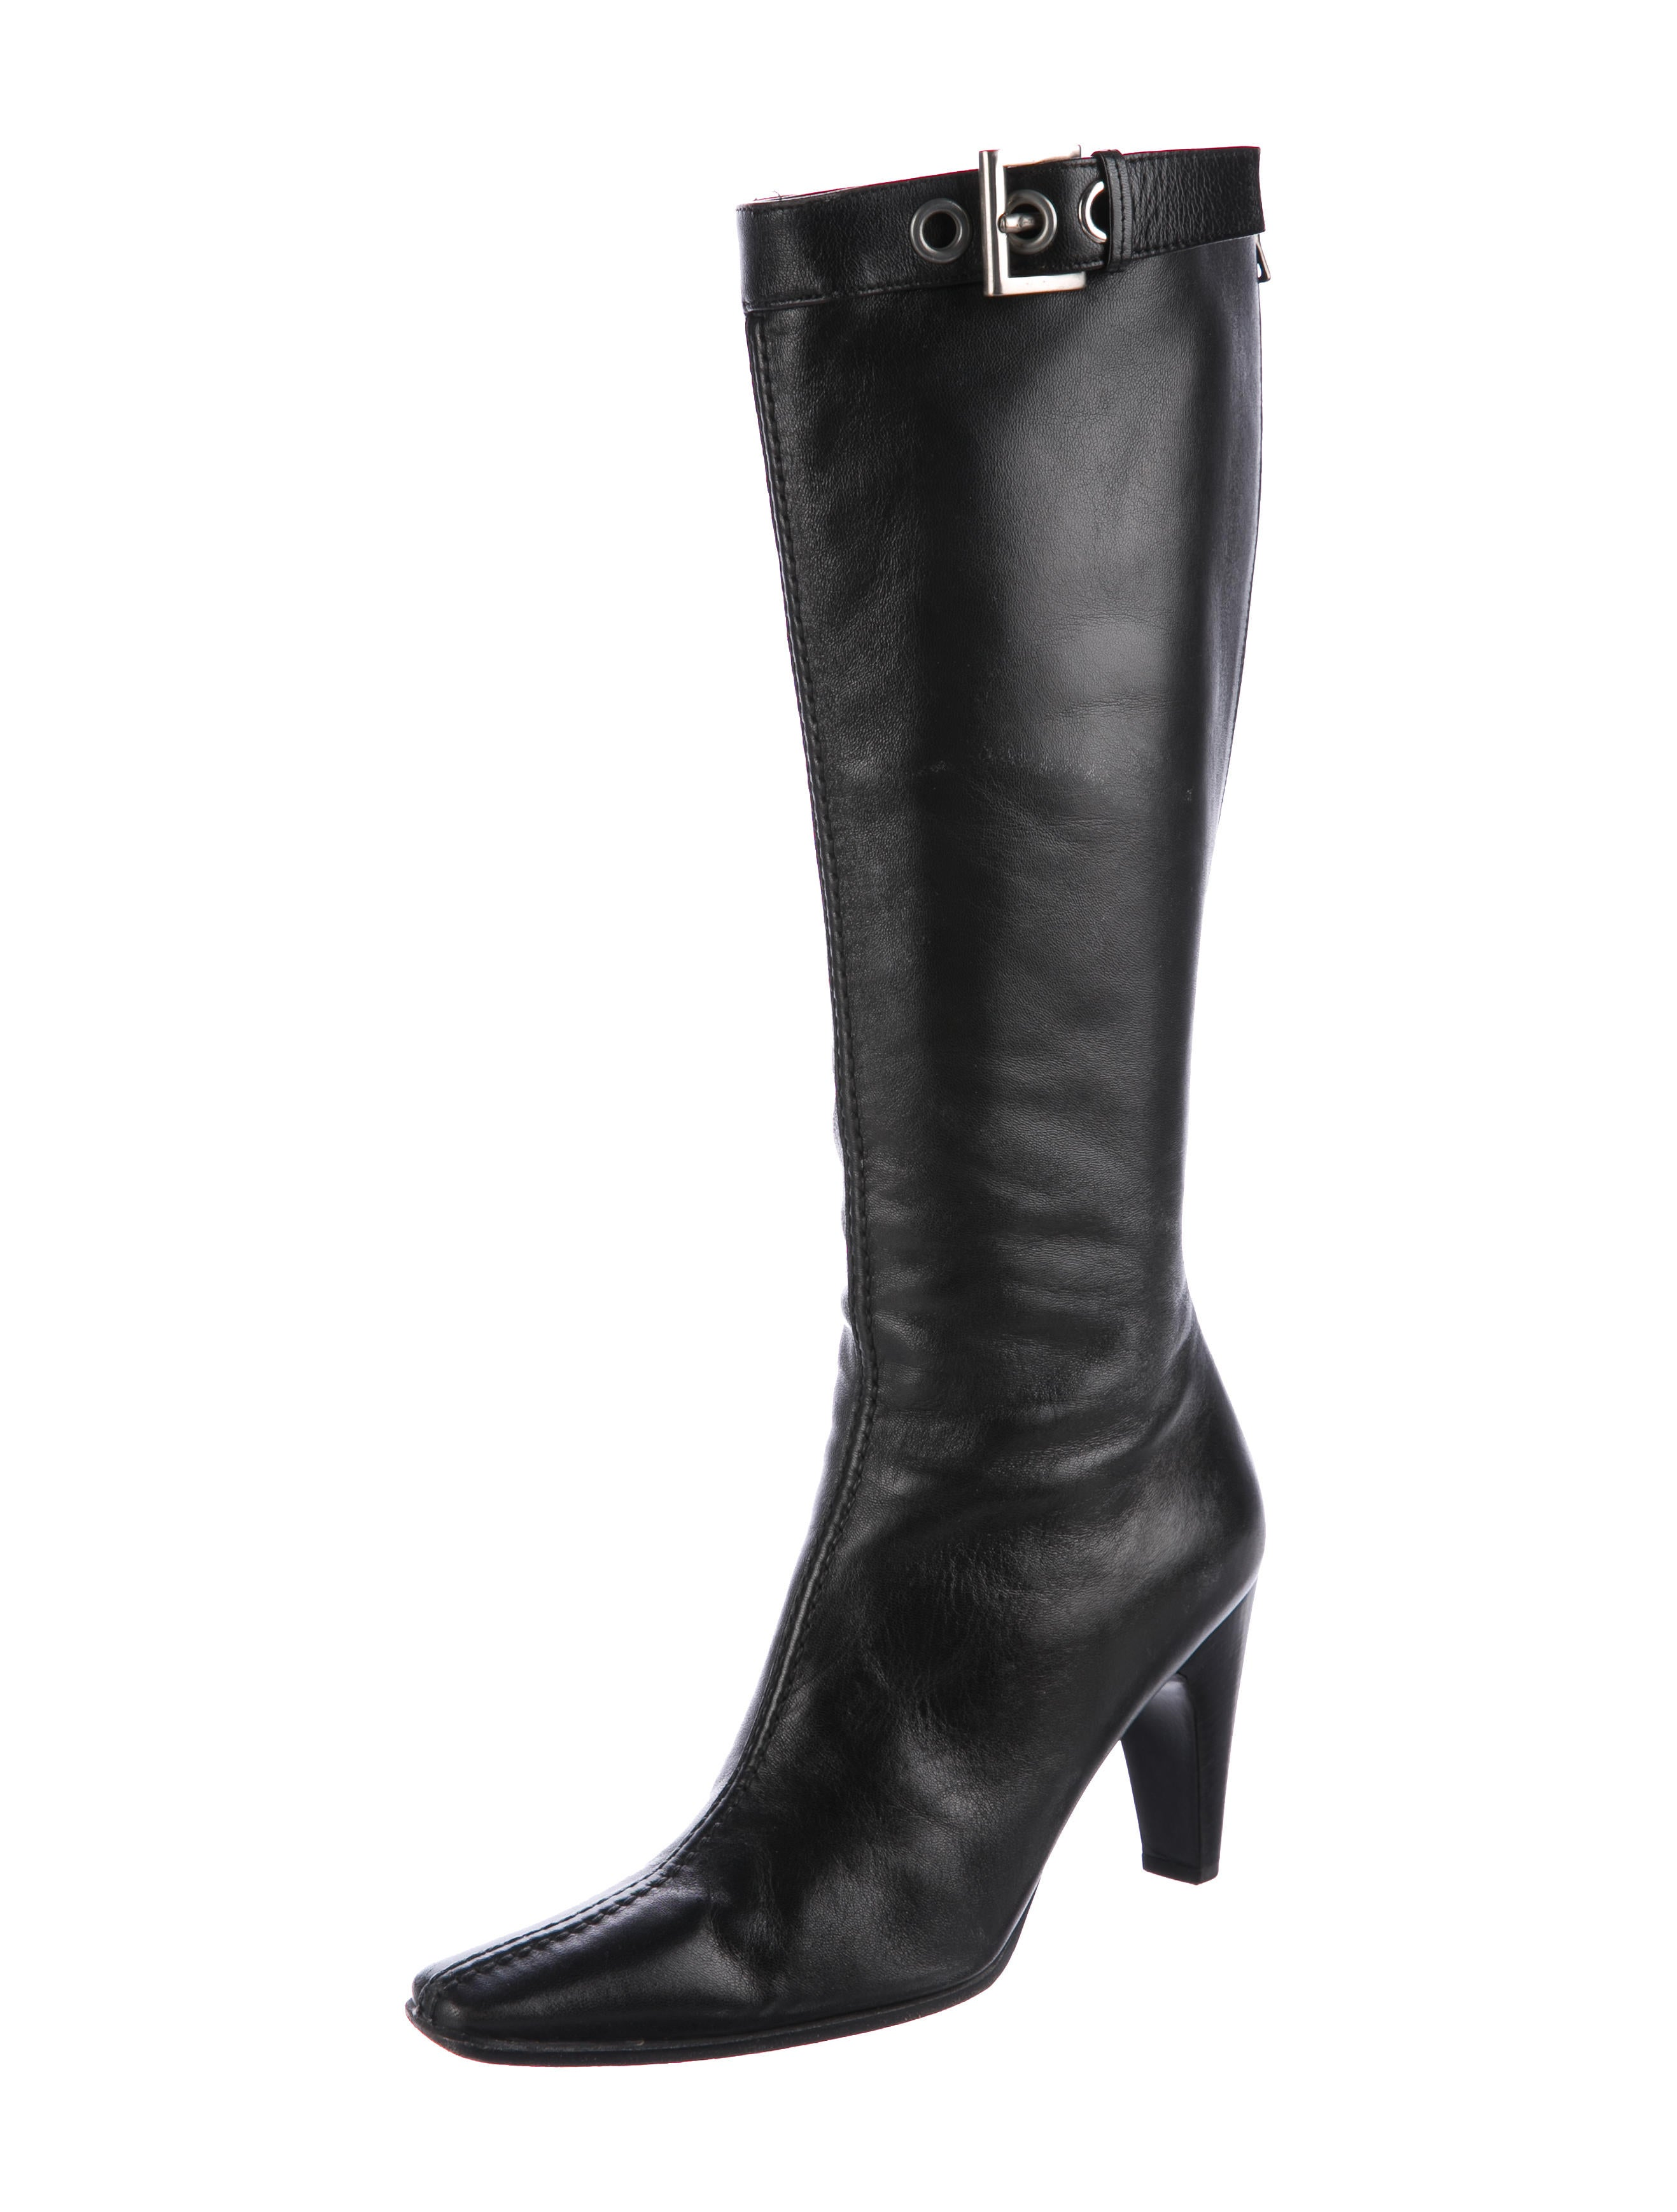 prada leather knee high boots shoes pra173550 the